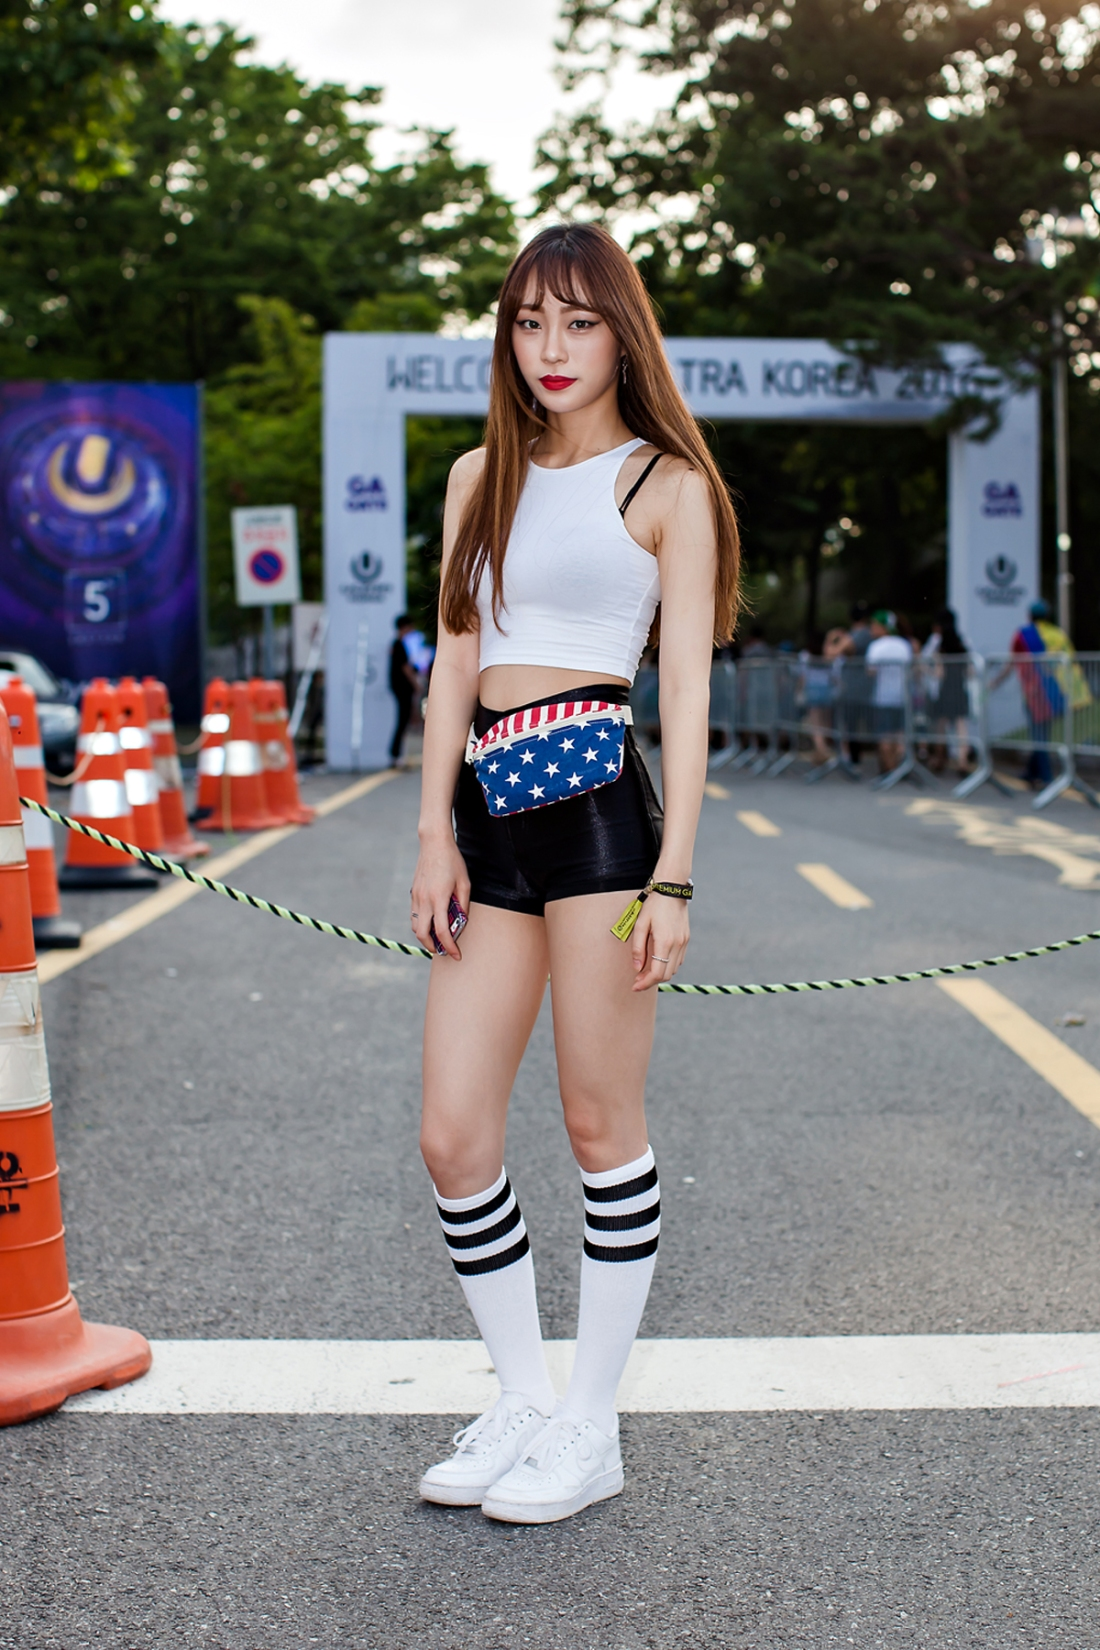 Lee Jisun, ULTRA MUSIC FESTIVAL KOREA 2016.jpg